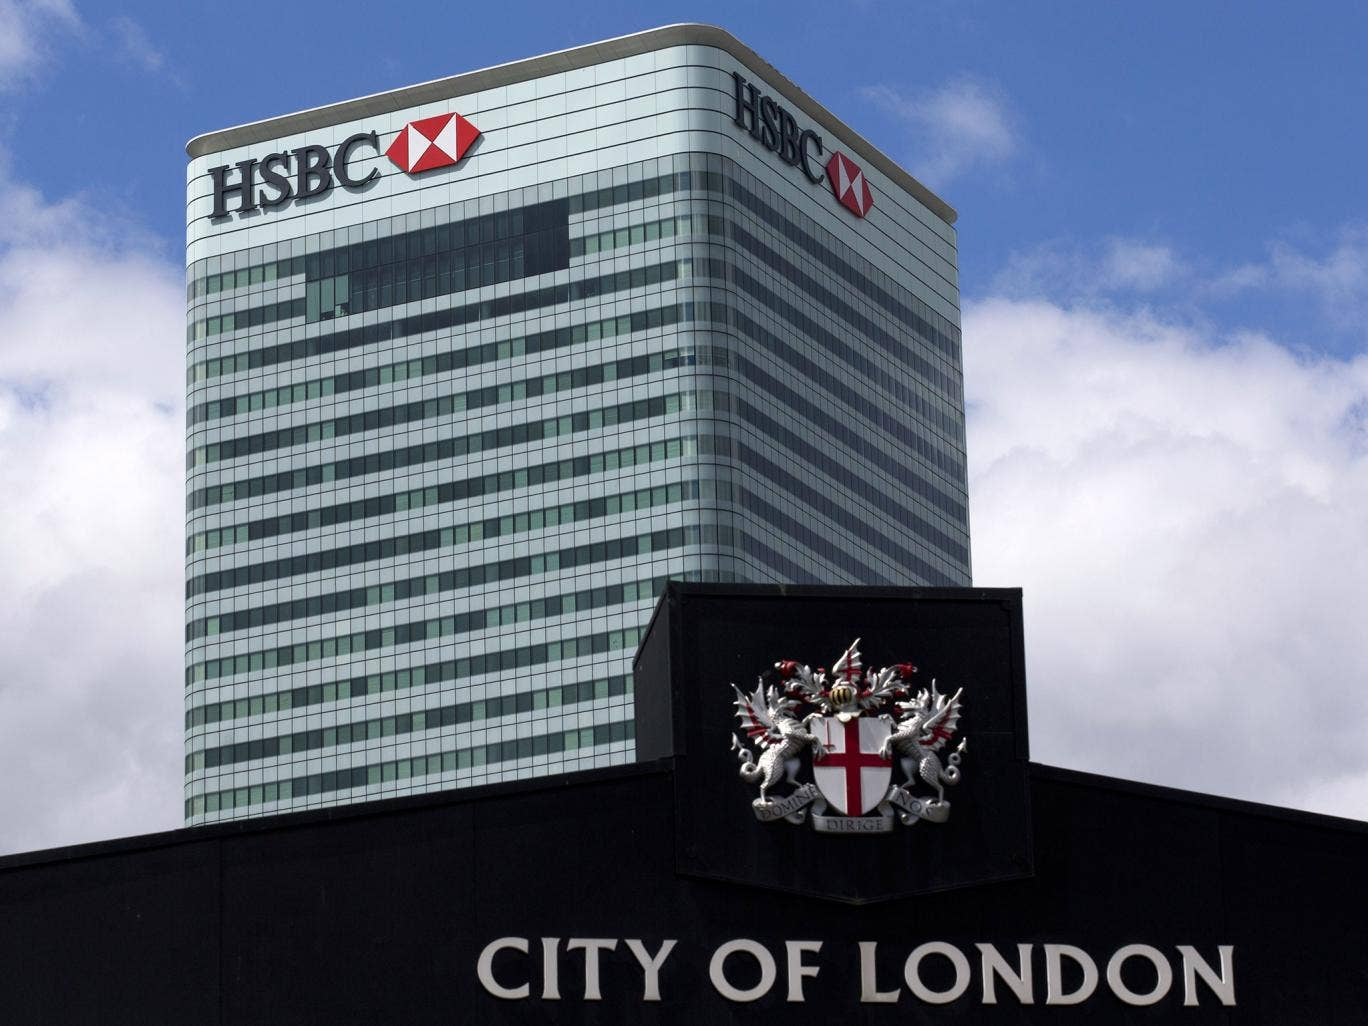 hsbc in financial market Hsbc has recently published its financial results for the fourth quarter however, hsbc announced that it had deferred a share buyback we believe that was the reason why the market reacted so negatively to the results as the stock fell by more than 35% on the day.